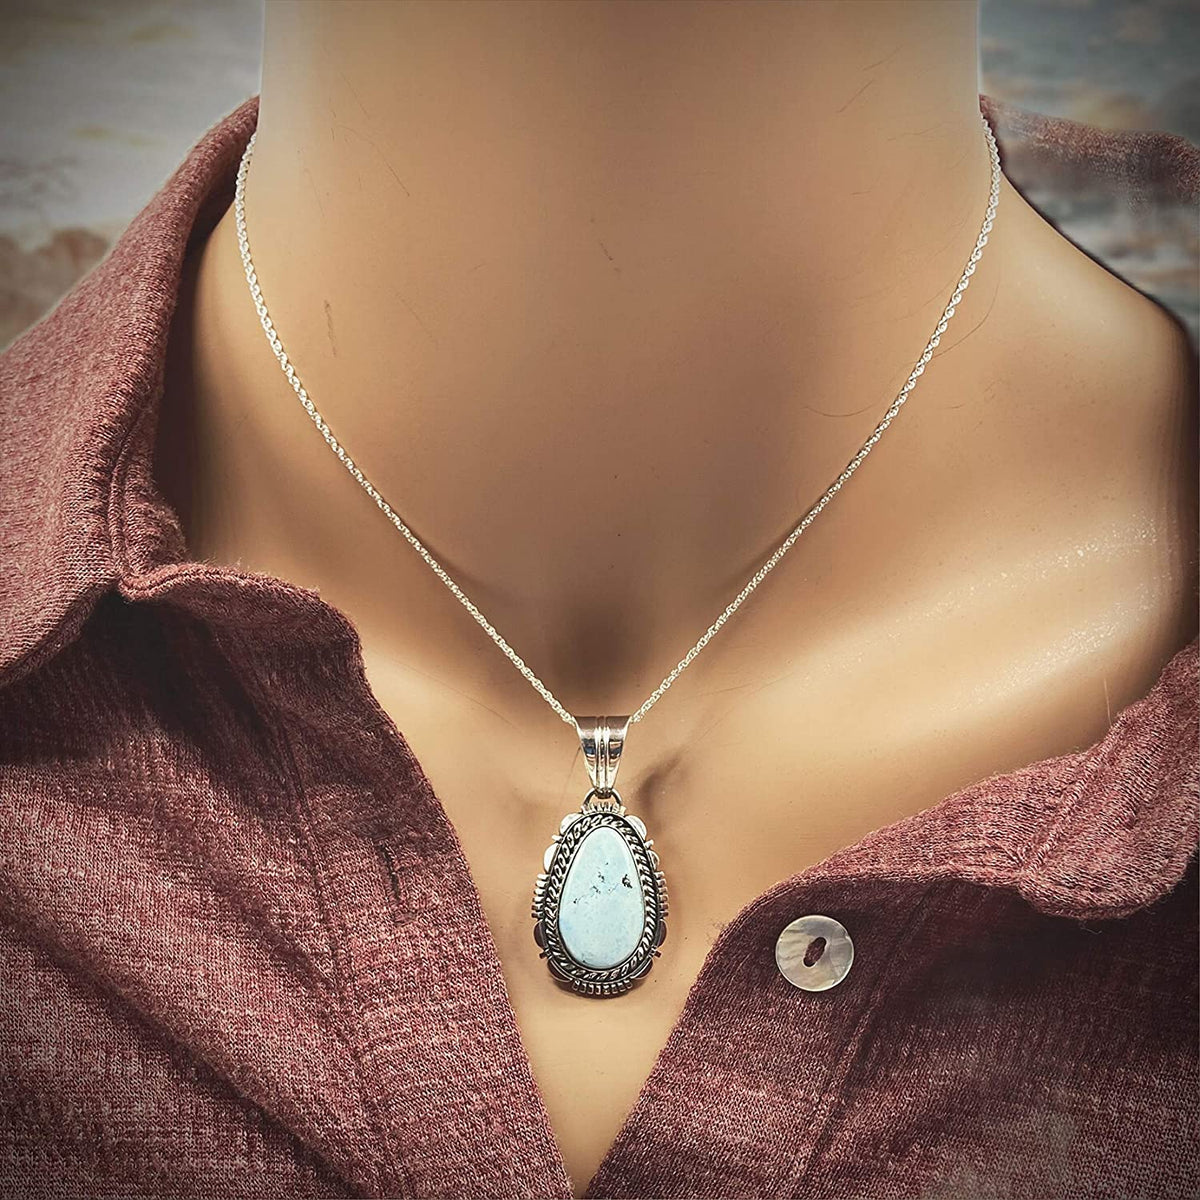 Genuine Golden Hill Turquoise Pendant, Sterling Silver, Authentic Navajo Native American USA Handmade, Artist Signed, Nickel Free, Southwest Jewelry